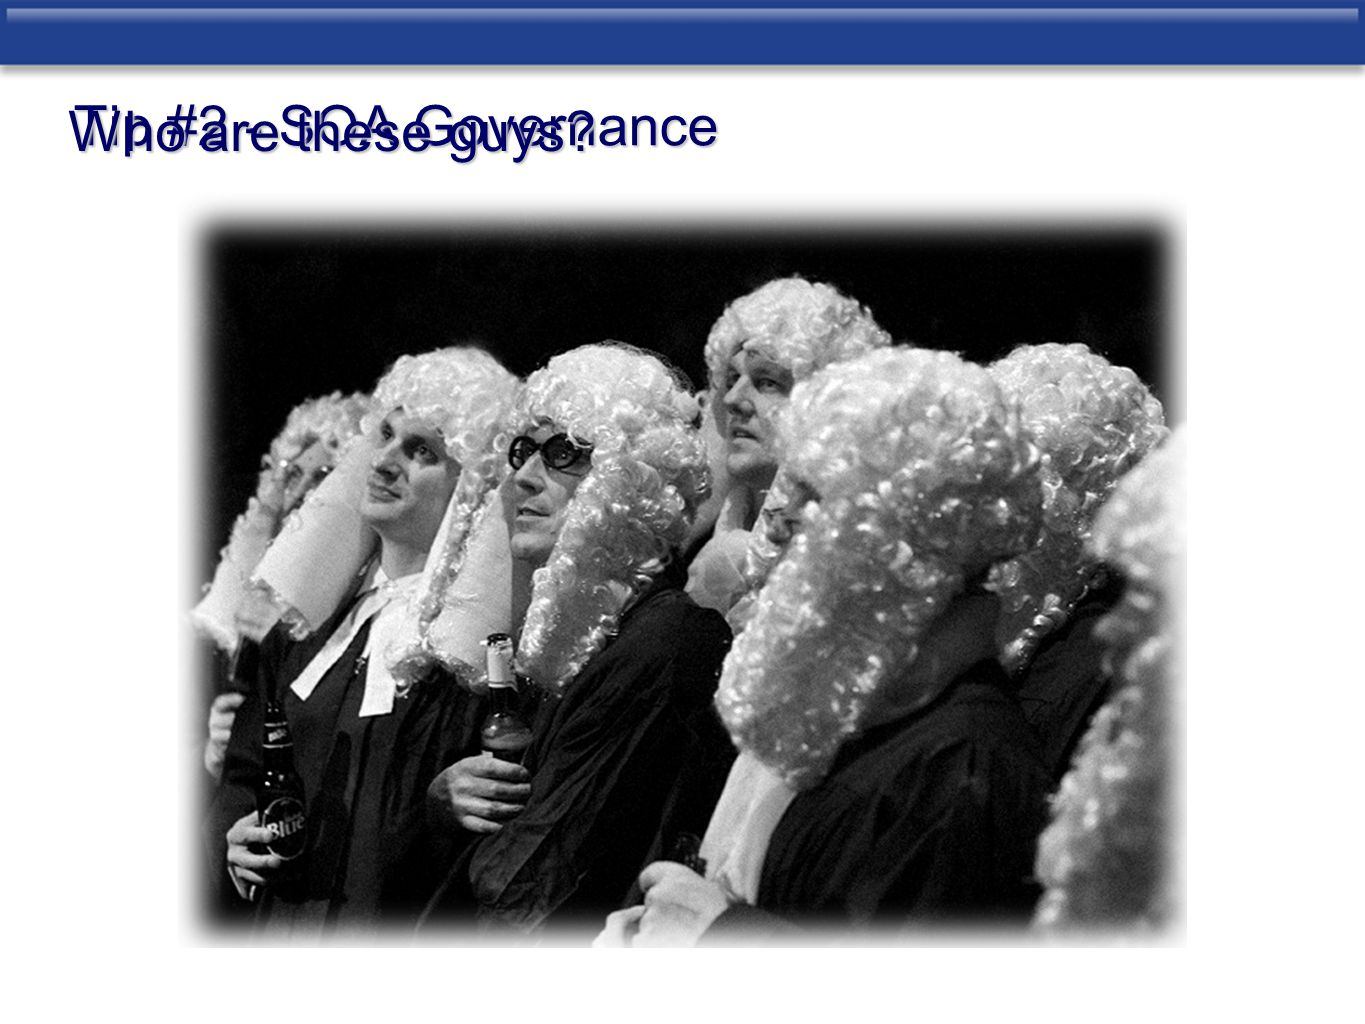 Tip #2 - SOA Governance Who are these guys?